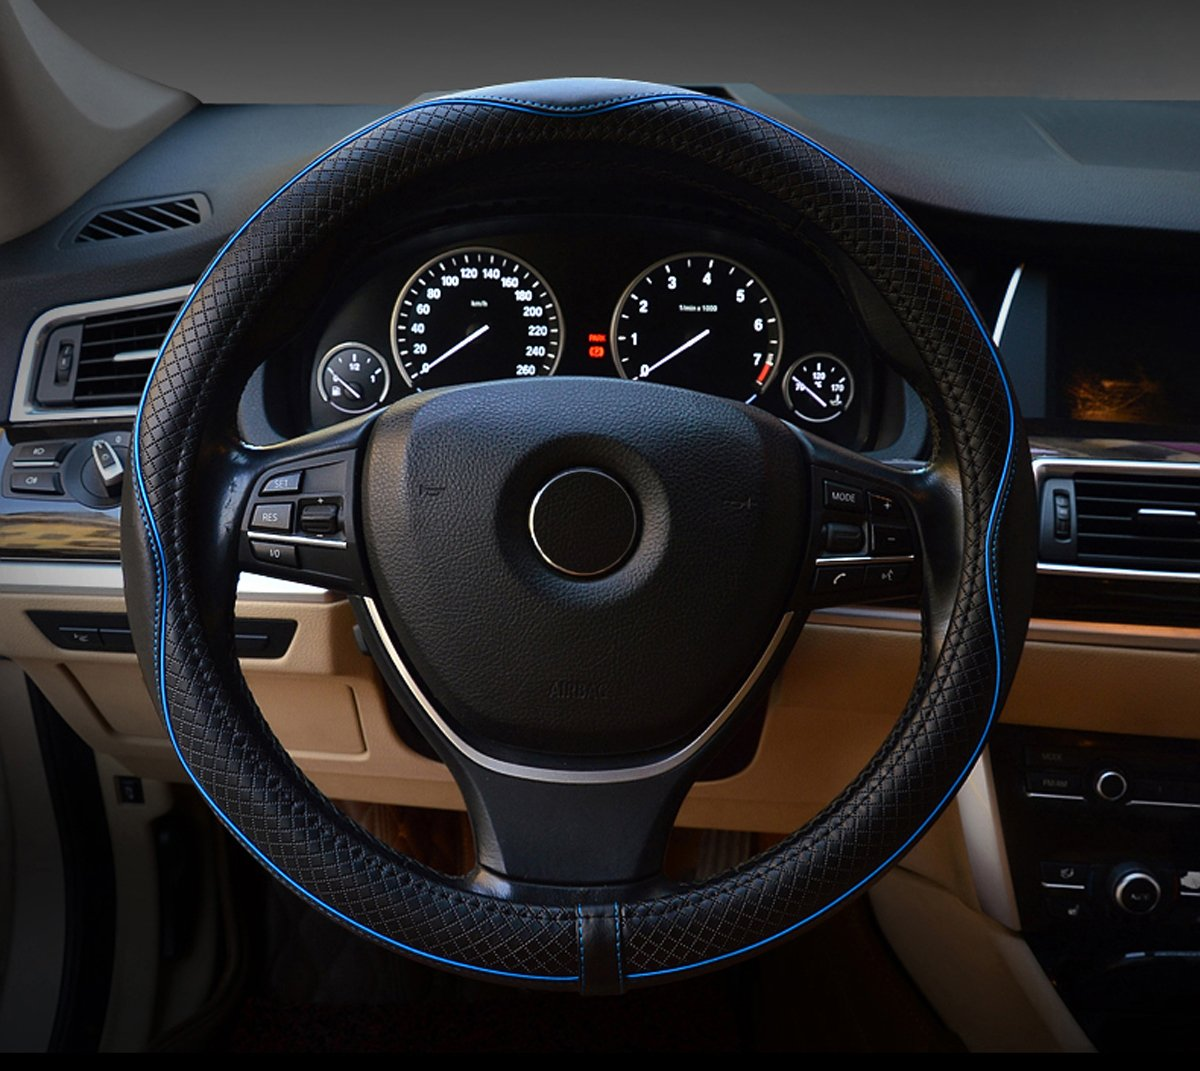 Leather Steering Wheel Cover Nice Grip Very Soft and Comfortable Universal 15 Inch -Fit is Nice and Snug (Black&Blue)